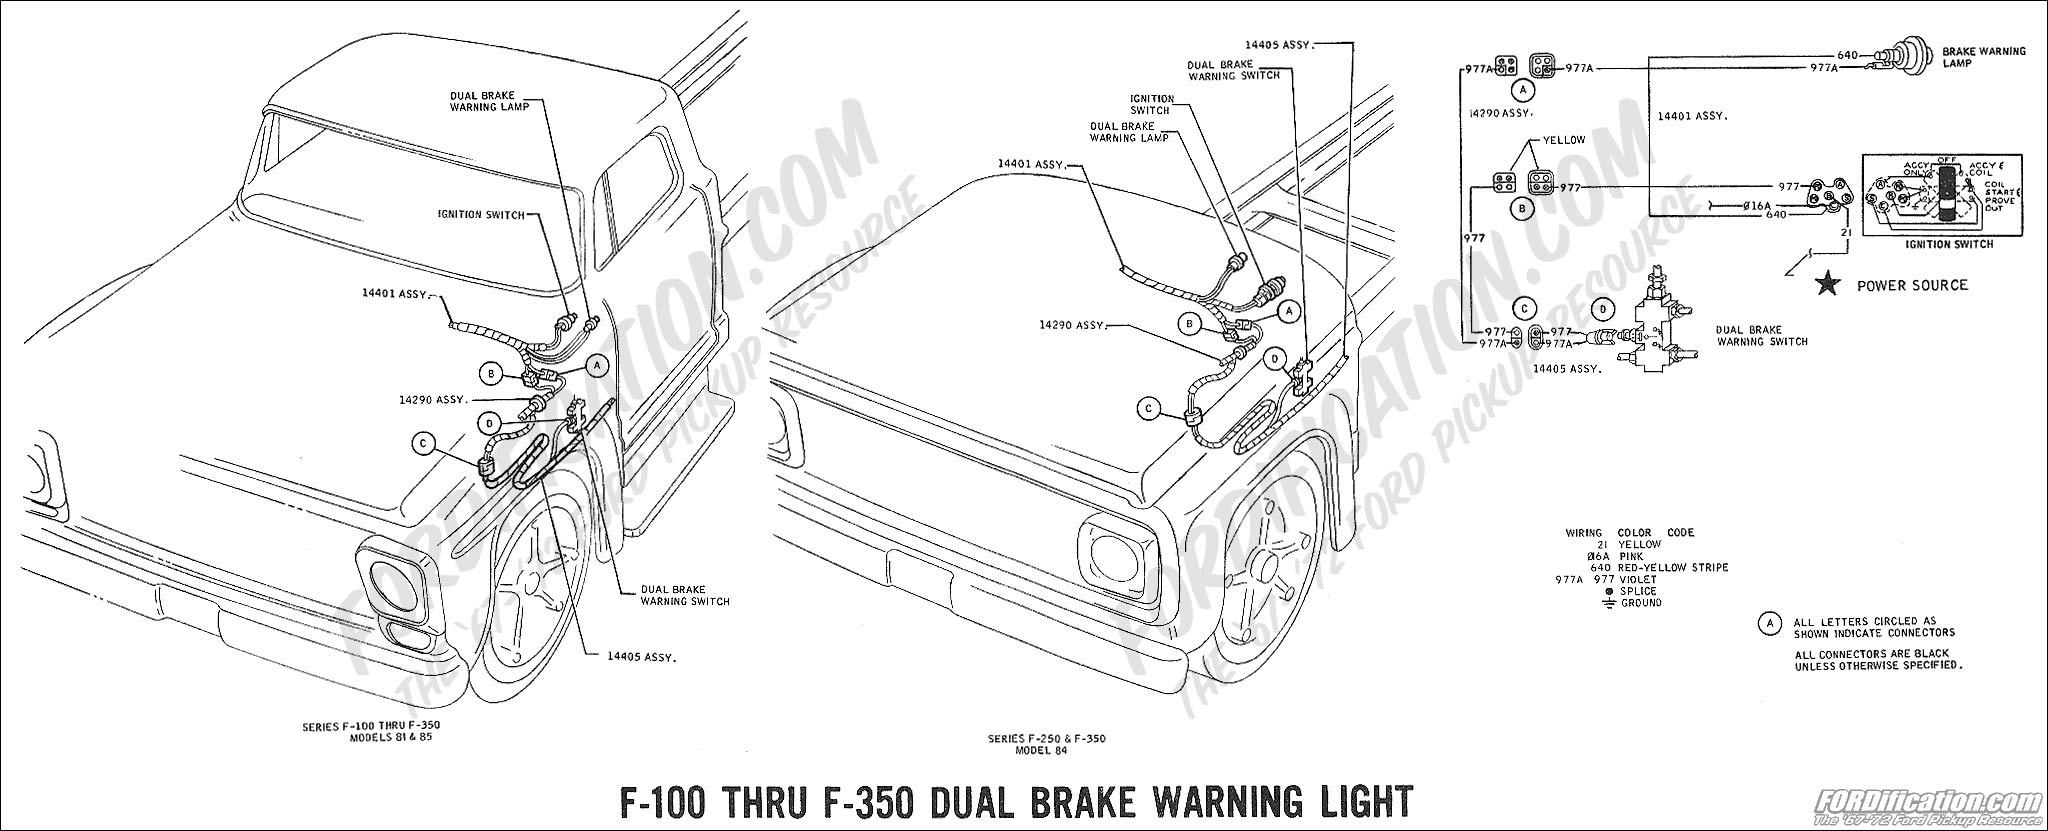 1969 Ford Pickup Fuse Box Wiring Library Tempo Diagram Free Download Schematic F 100 Thru 350 Dual Brake Warning Light Truck Technical Drawings And Schematics